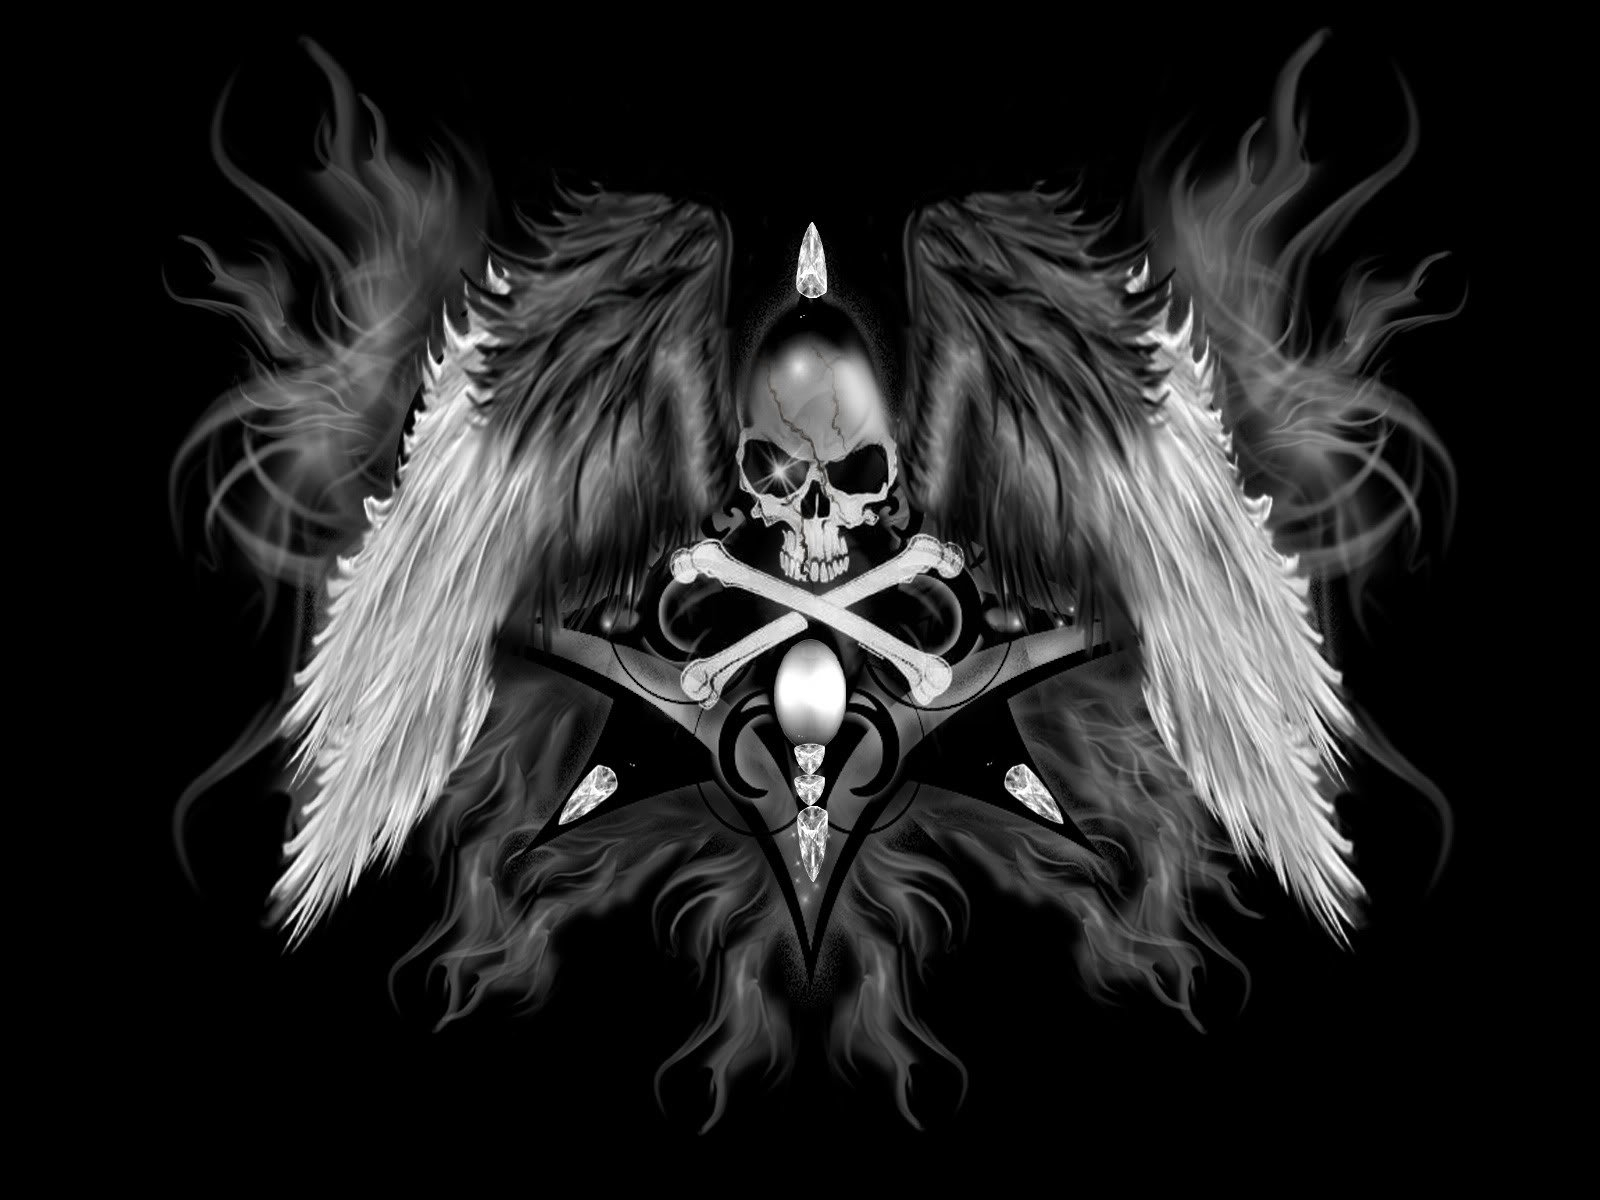 3 death angel hd wallpapers | background images - wallpaper abyss